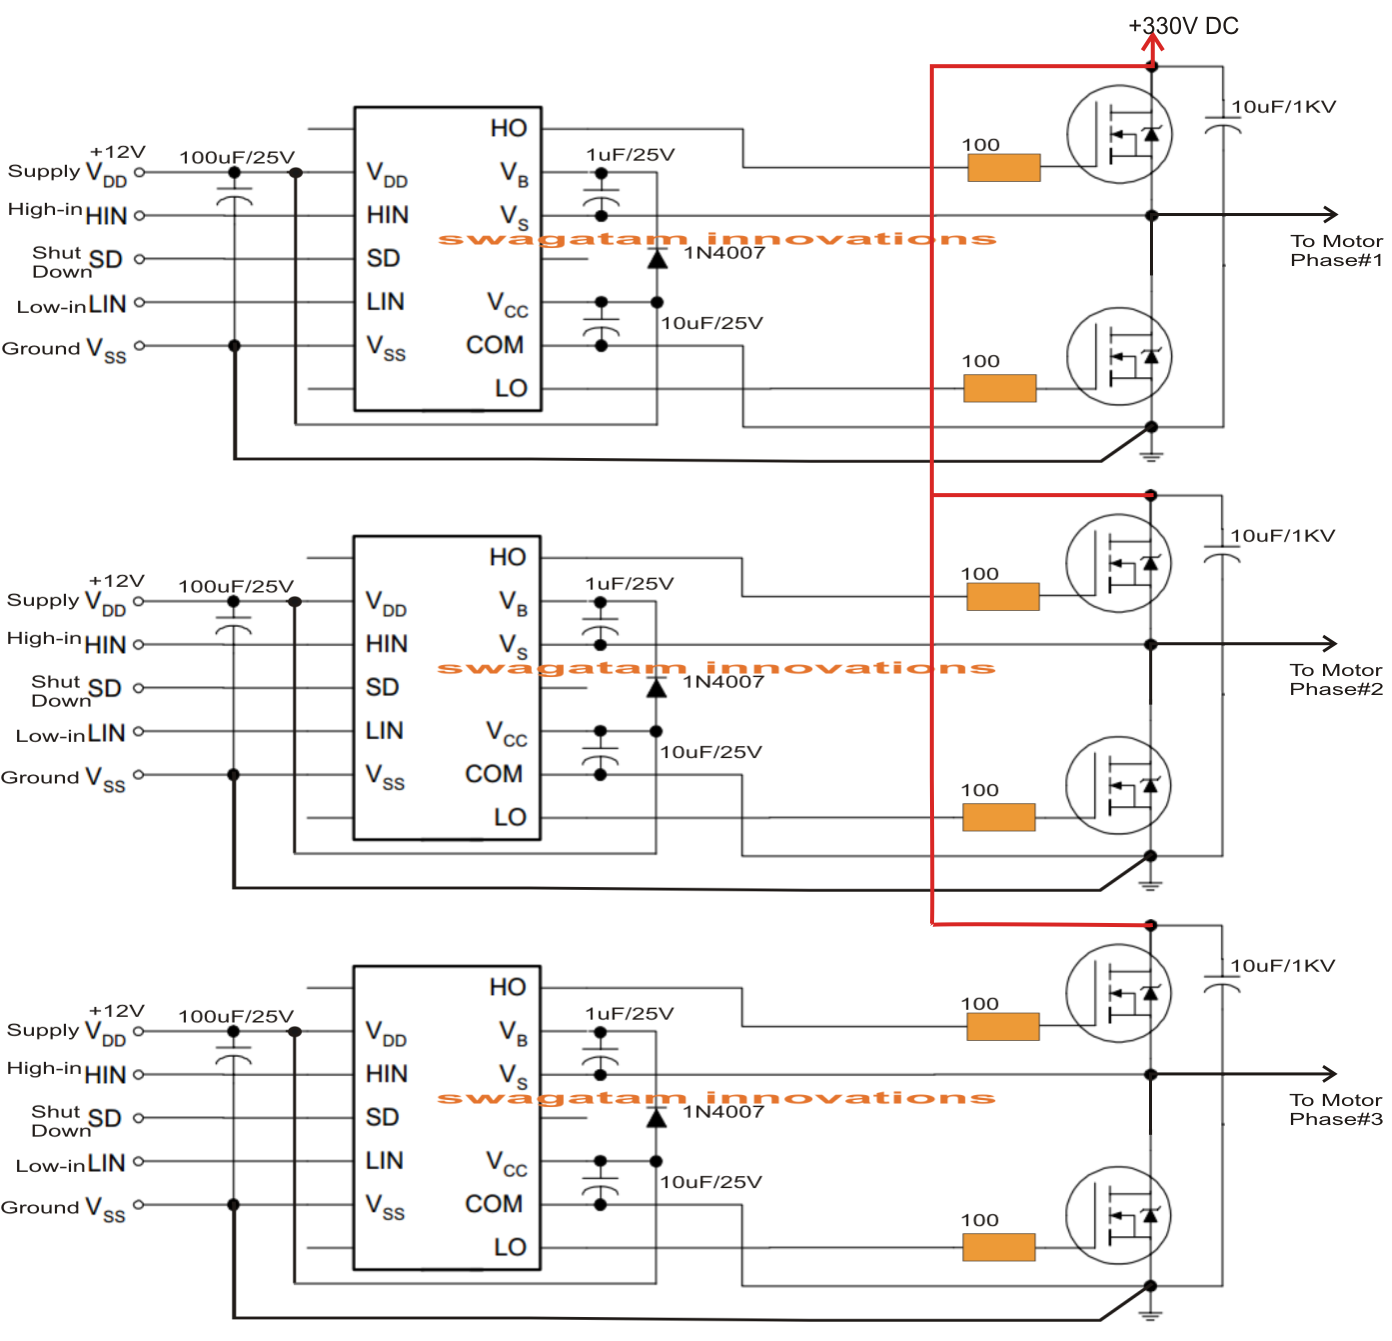 3 Phase Inverter Circuit Diagram 32 Wiring Images Sg3524 Http Wwwseekiccom Circuitdiagram Motor Driver From Single